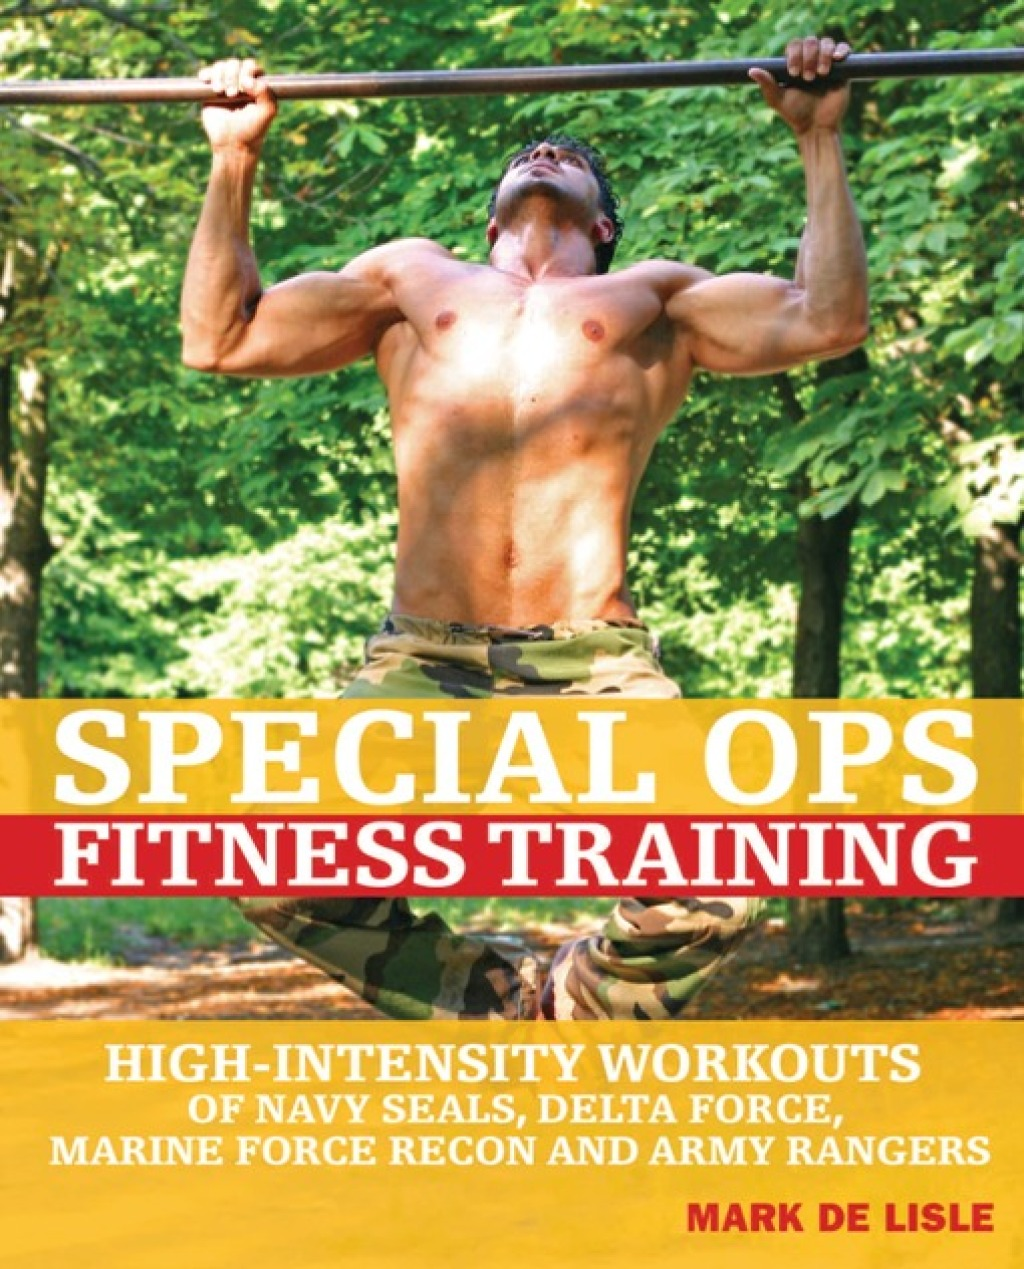 Special Ops Fitness Training: High-Intensity Workouts of Navy Seals, Delta Force, Marine Force Recon and Army Rangers (ebook) eBooks